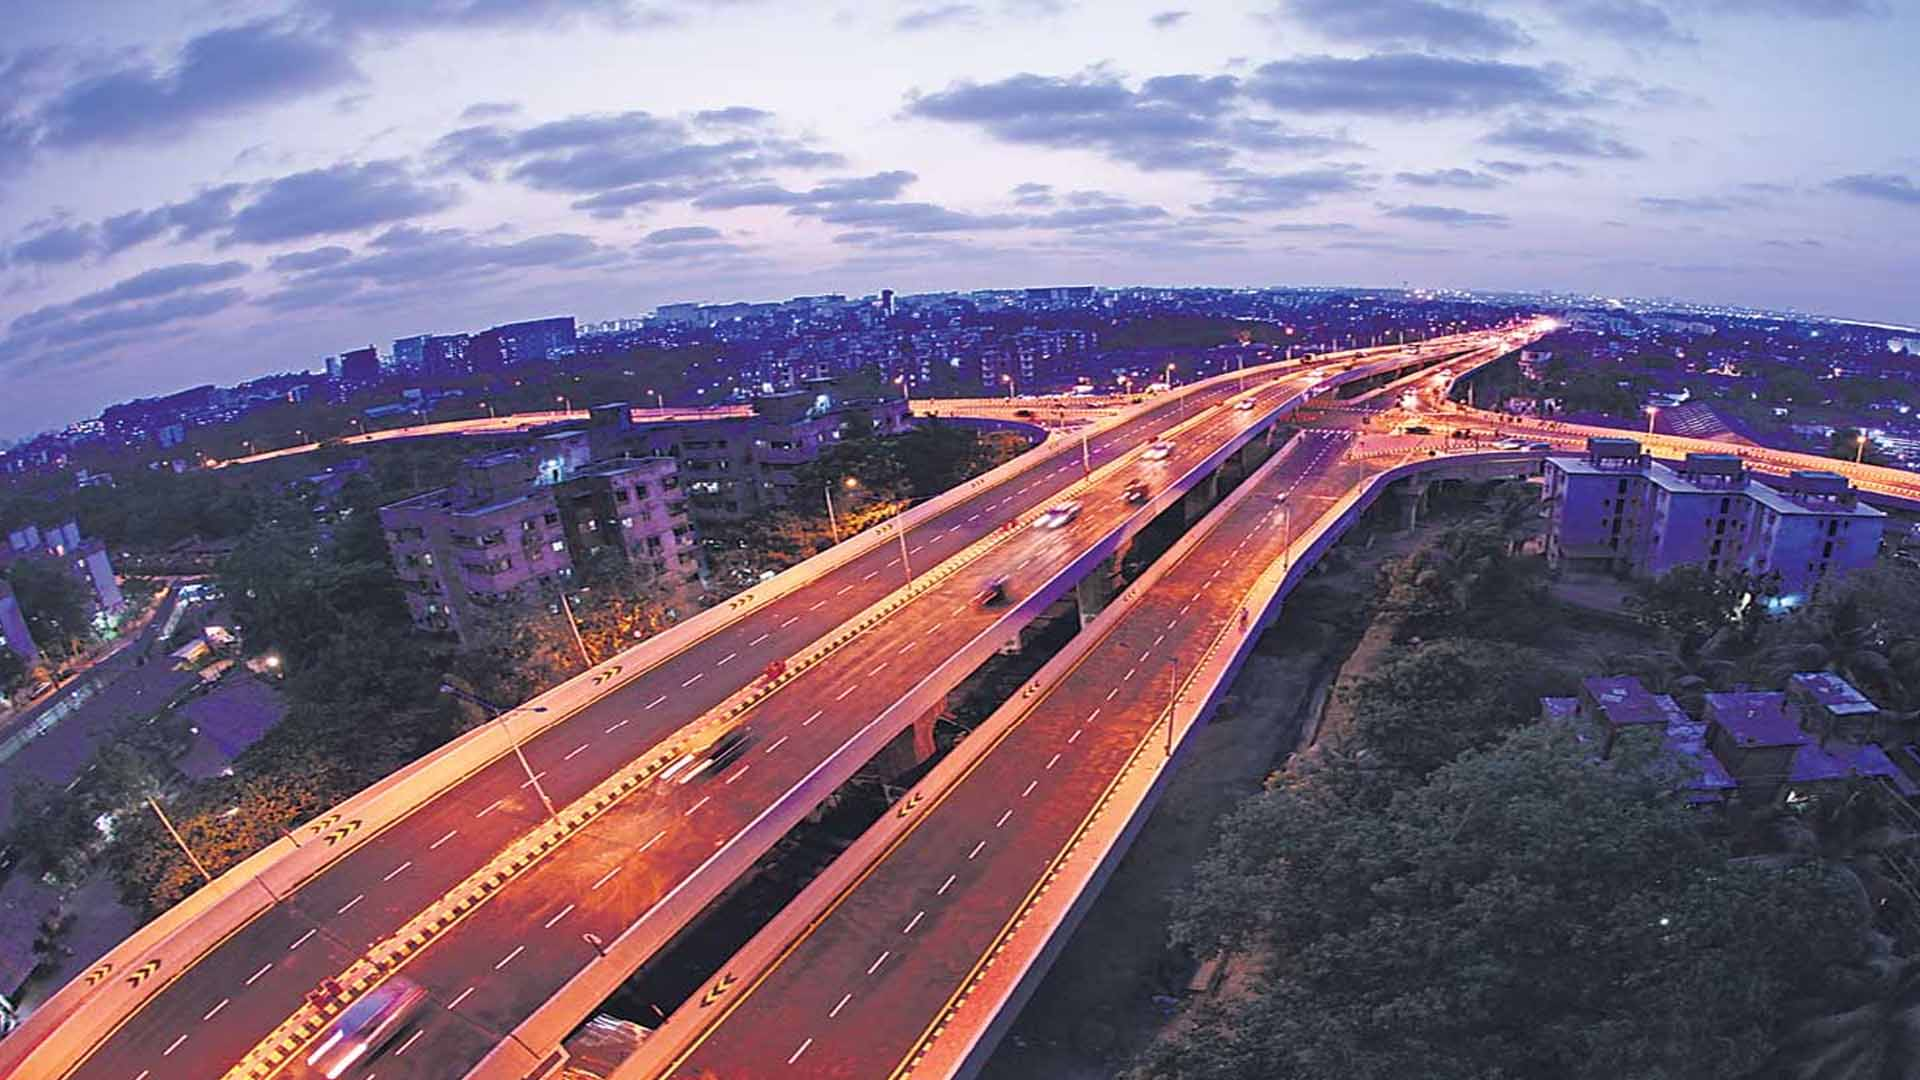 Chembur: From an industrial suburb to a prime property market